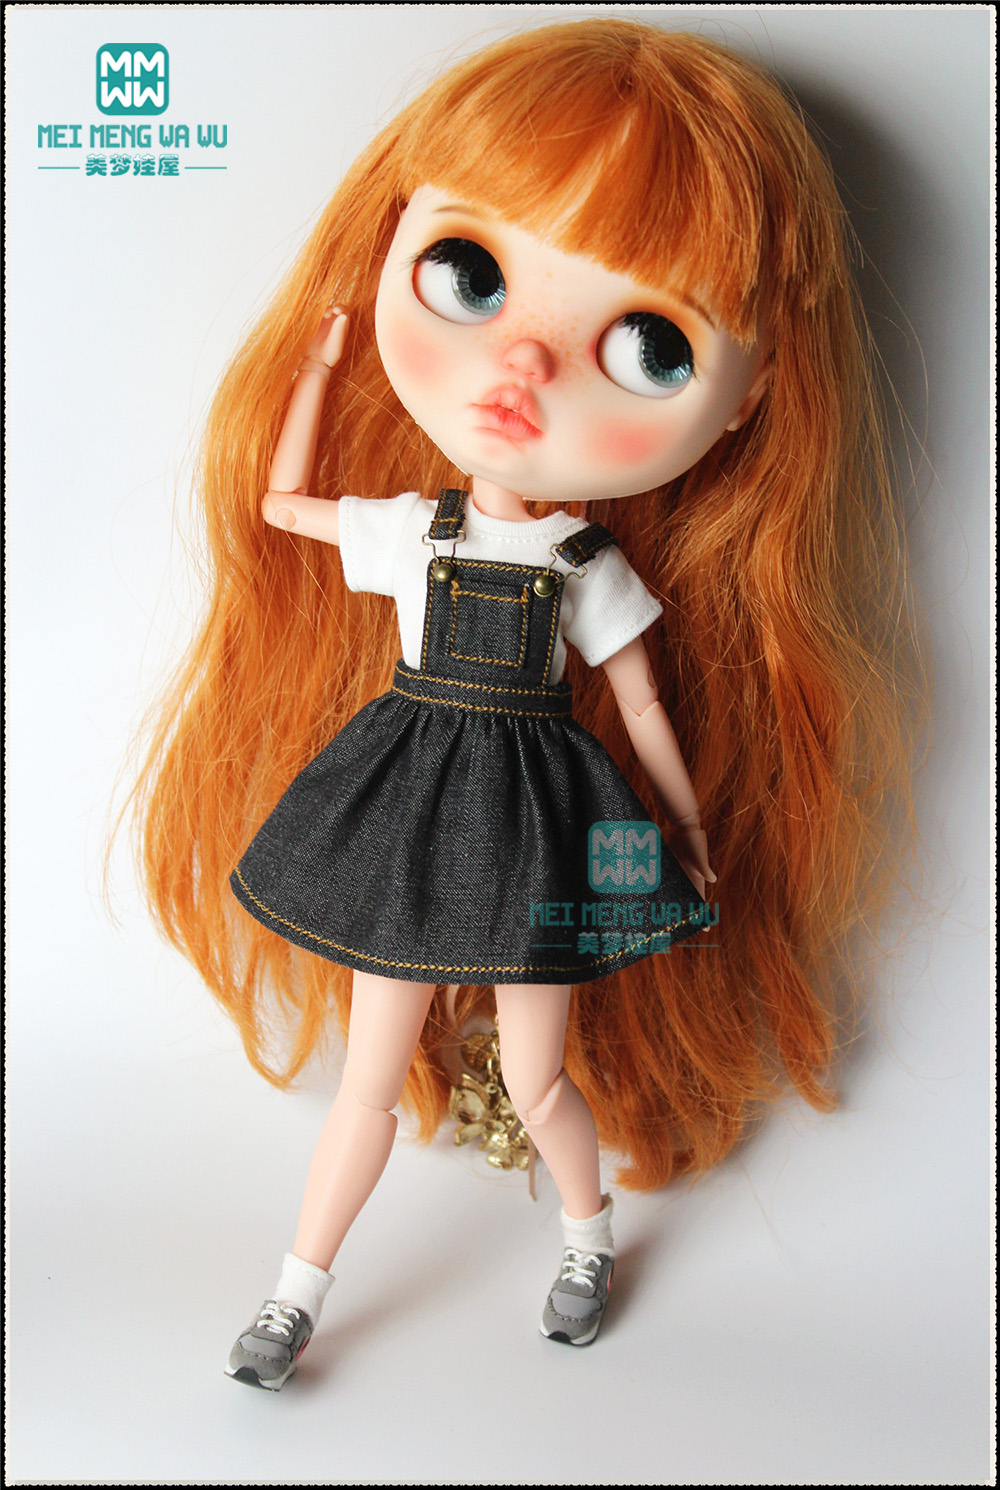 1PCS Blyth Doll Clothes Fashion Denim Strap Dress, Striped Tights For Blyth , Azone, Obitsu, FR 1/6 Doll